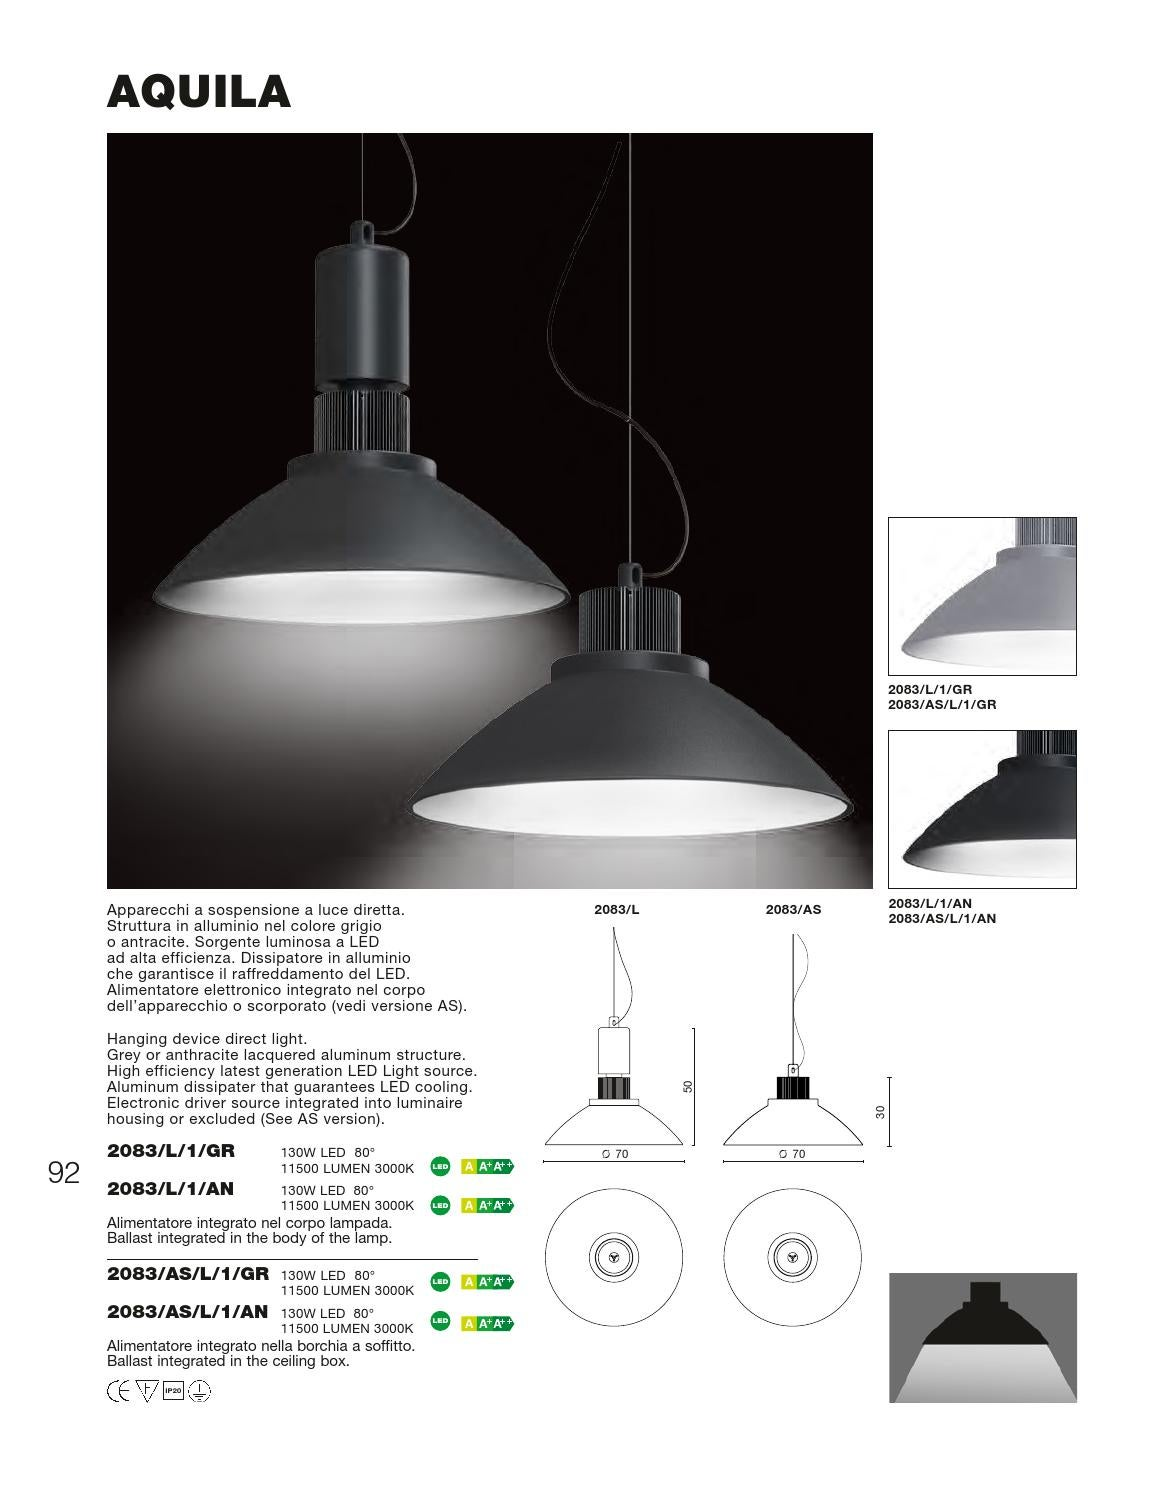 System Catalogue 2016 Martinelliluce By Martinelli Luce Spa Issuu